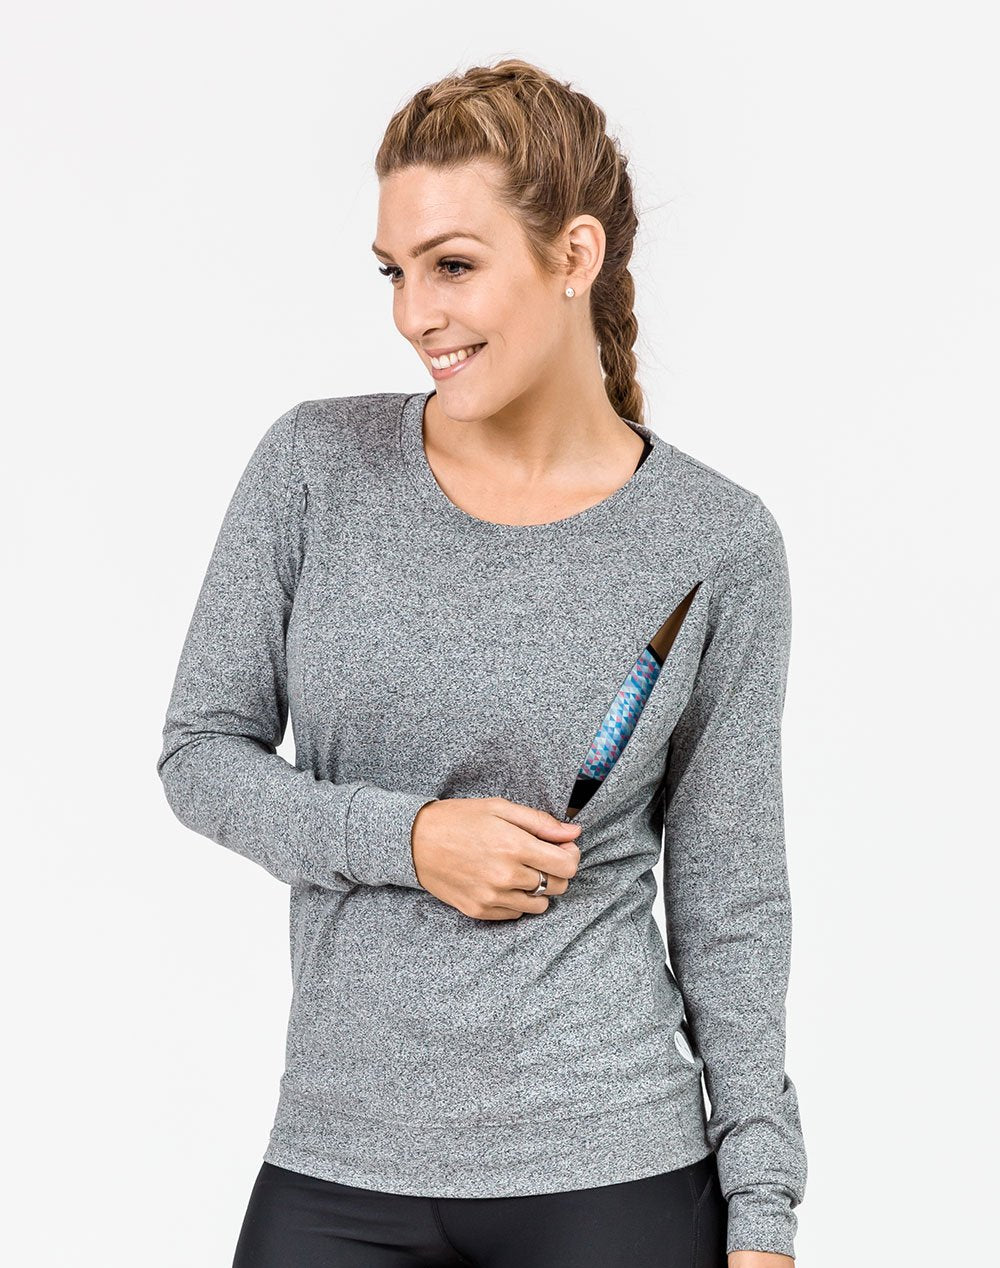 active mum wearing a grey crew neck maternity top with invisible zips unzipped to breastfeed